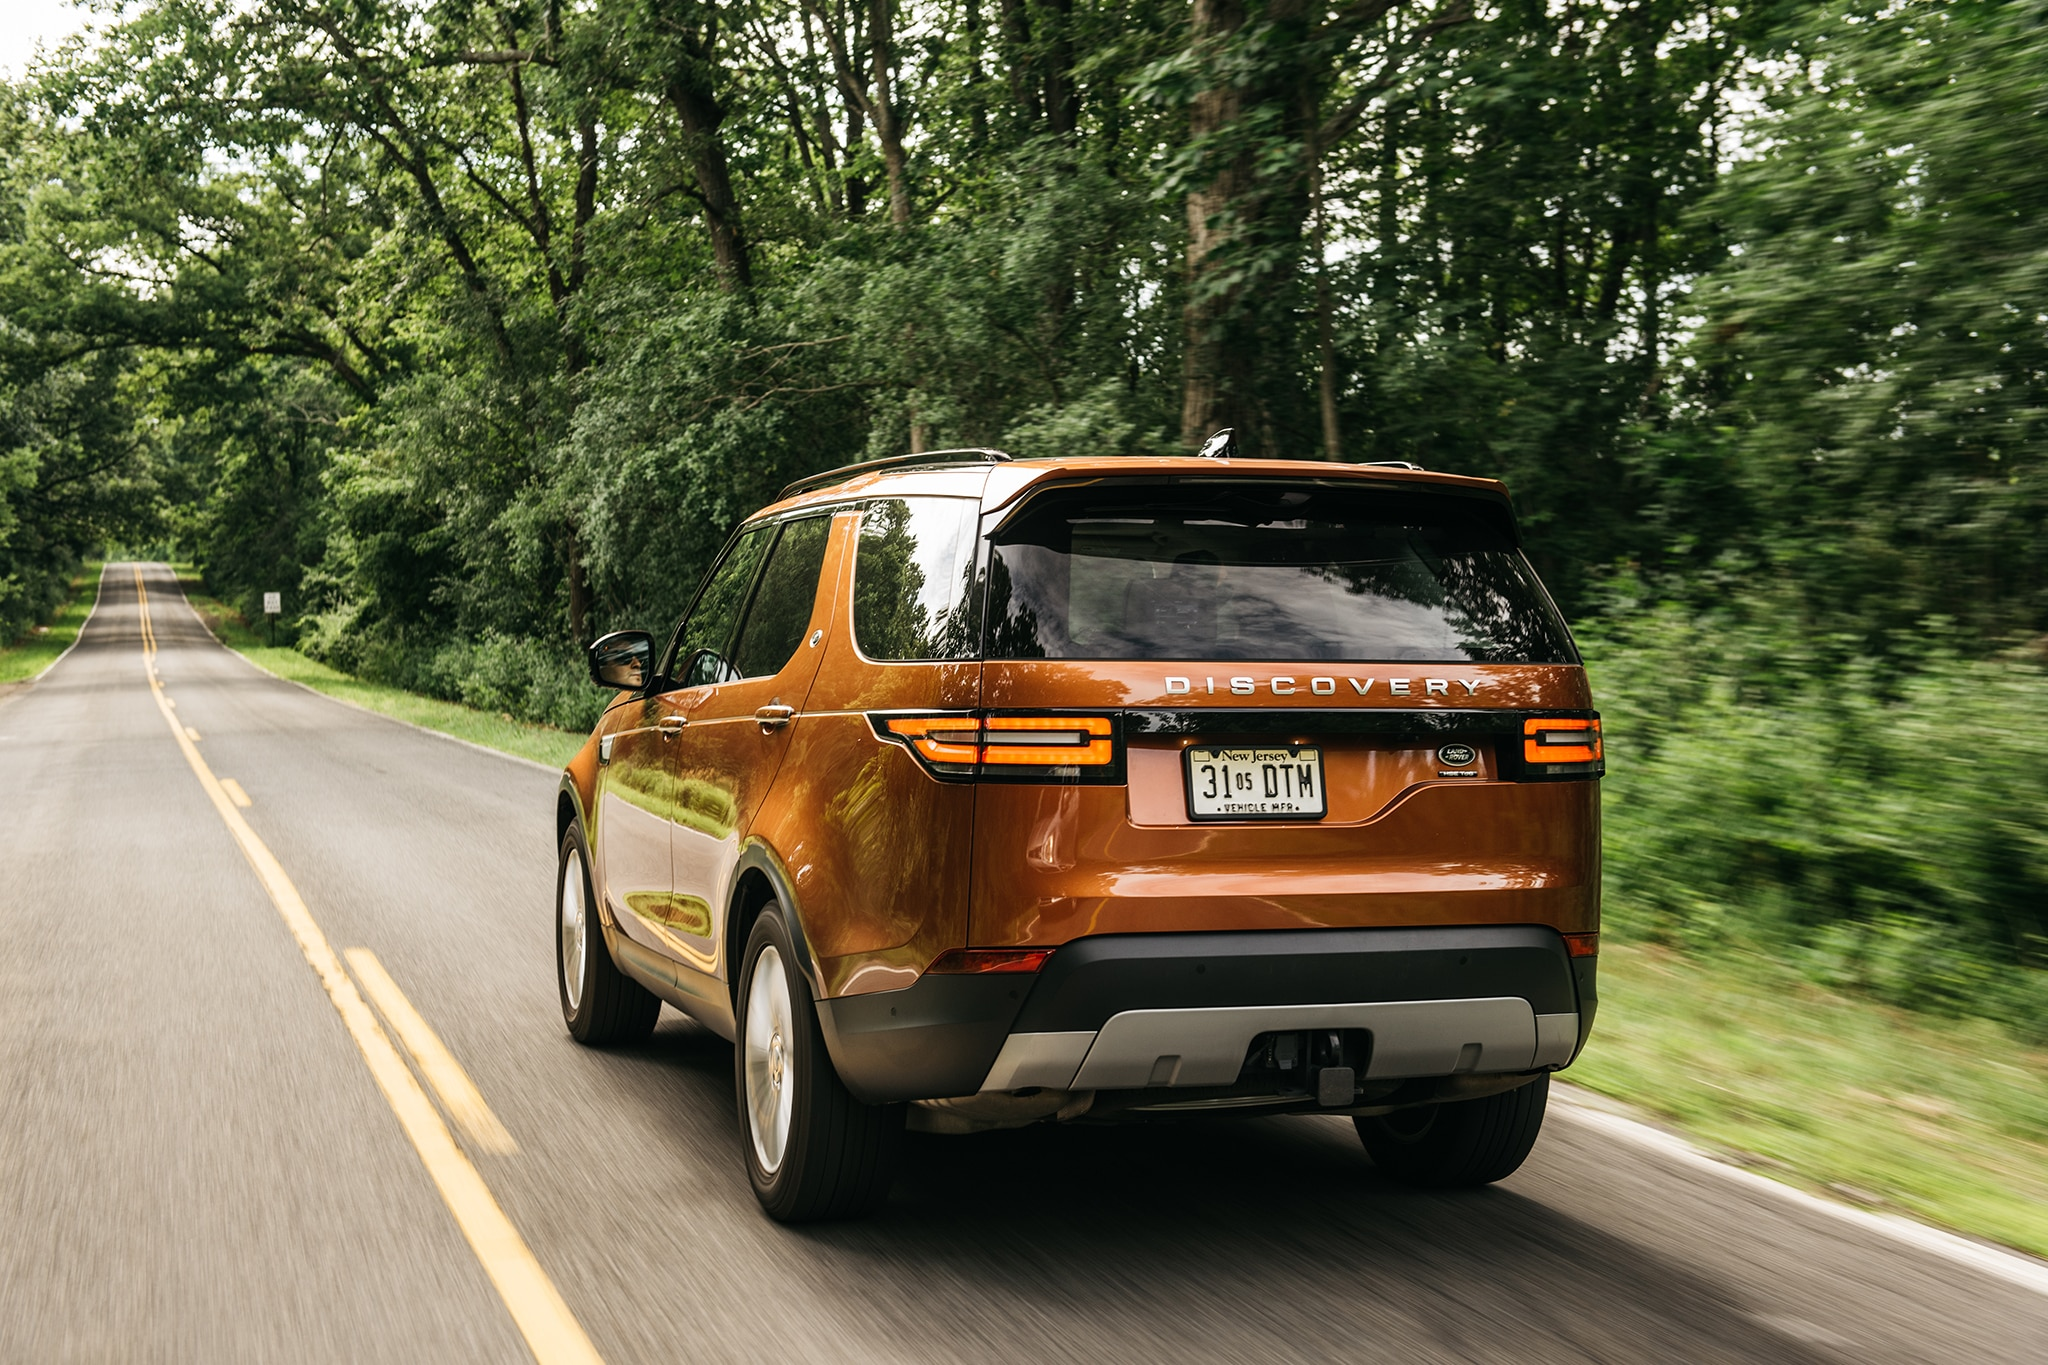 2017 Land Rover Discovery Td6 HSE Rear Three Quarter In Motion 08